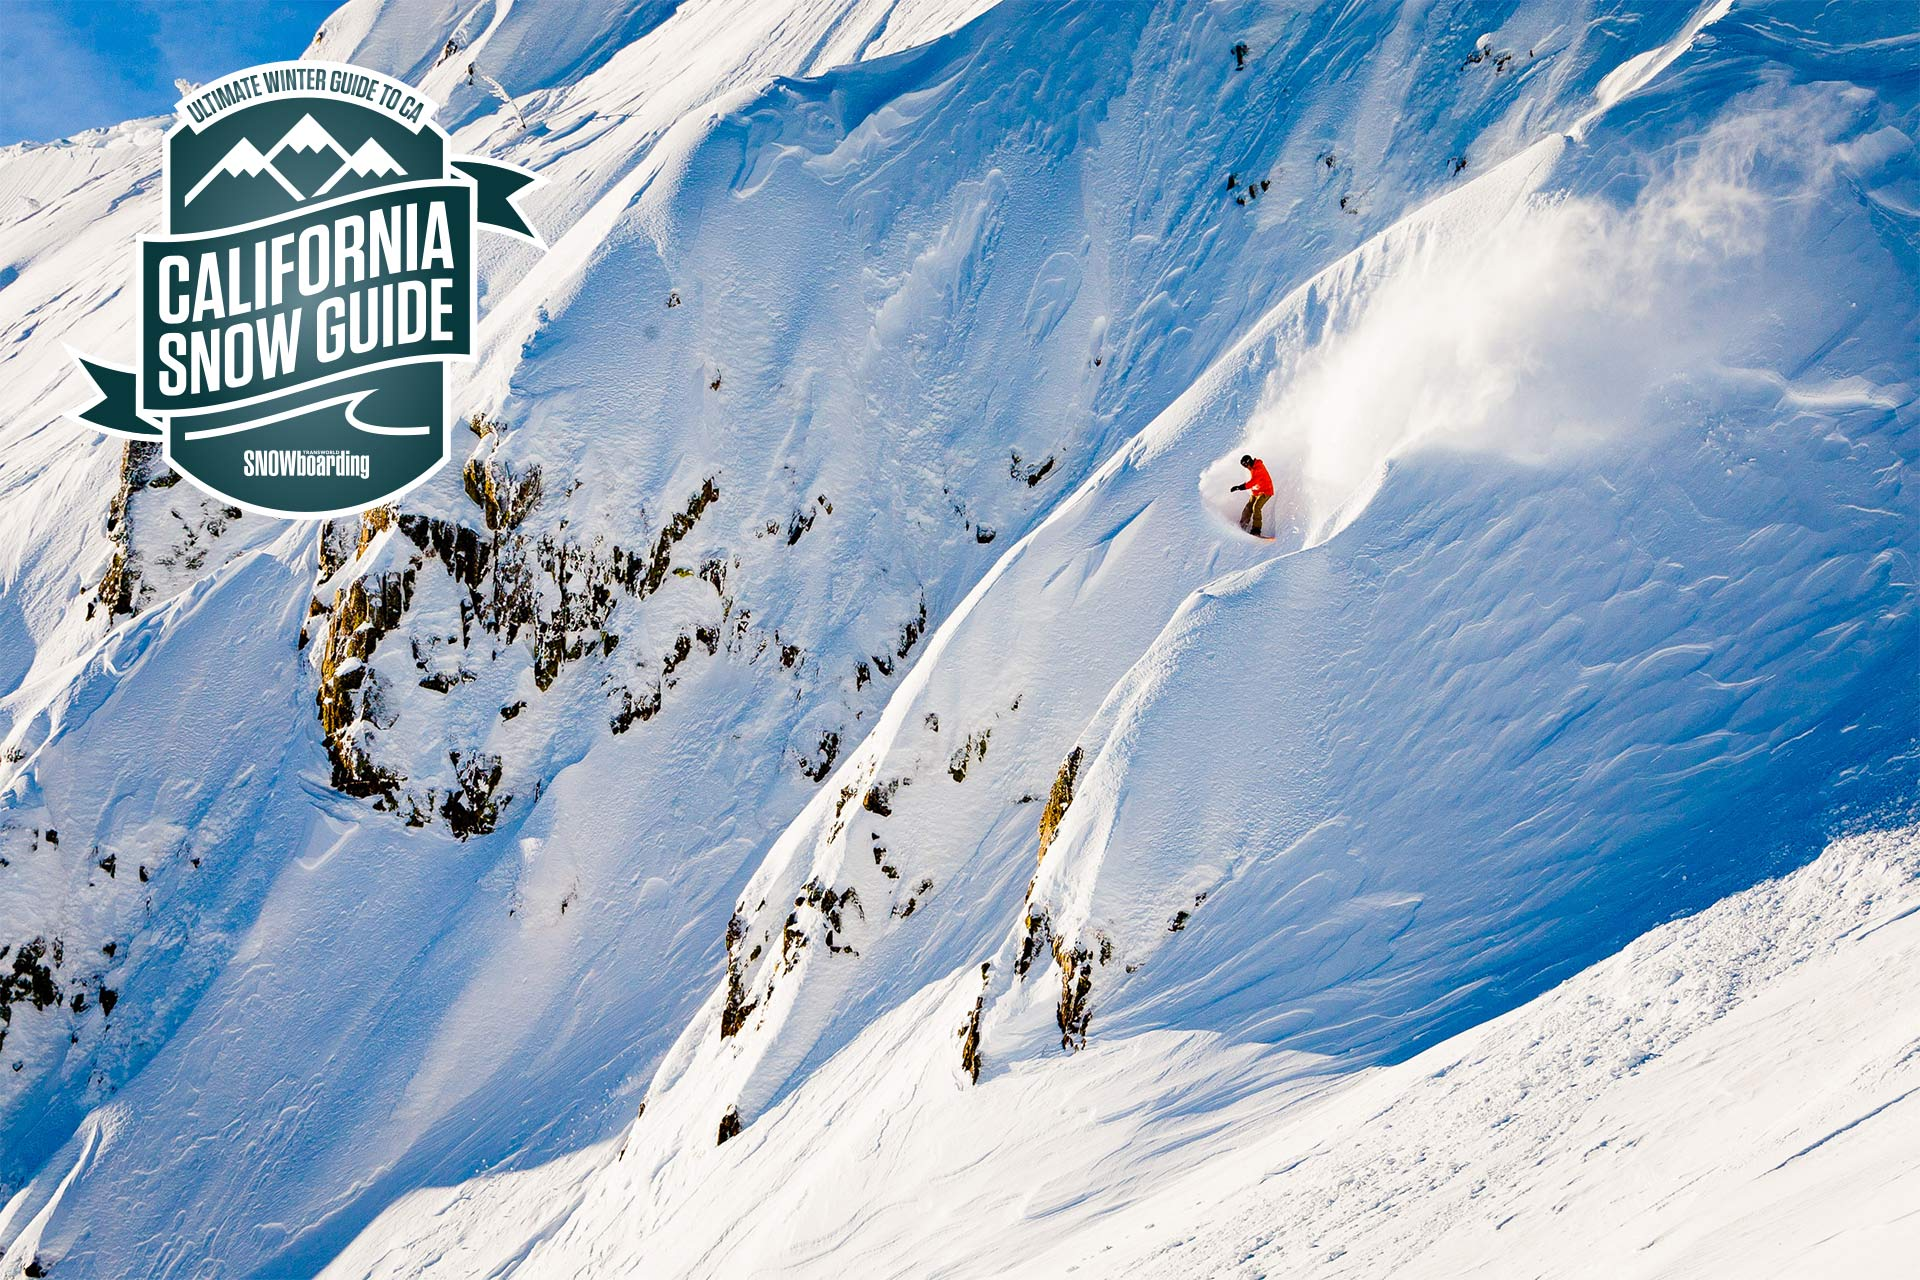 Squaw Valley Snowboarding Guide Snowboarder Magazine